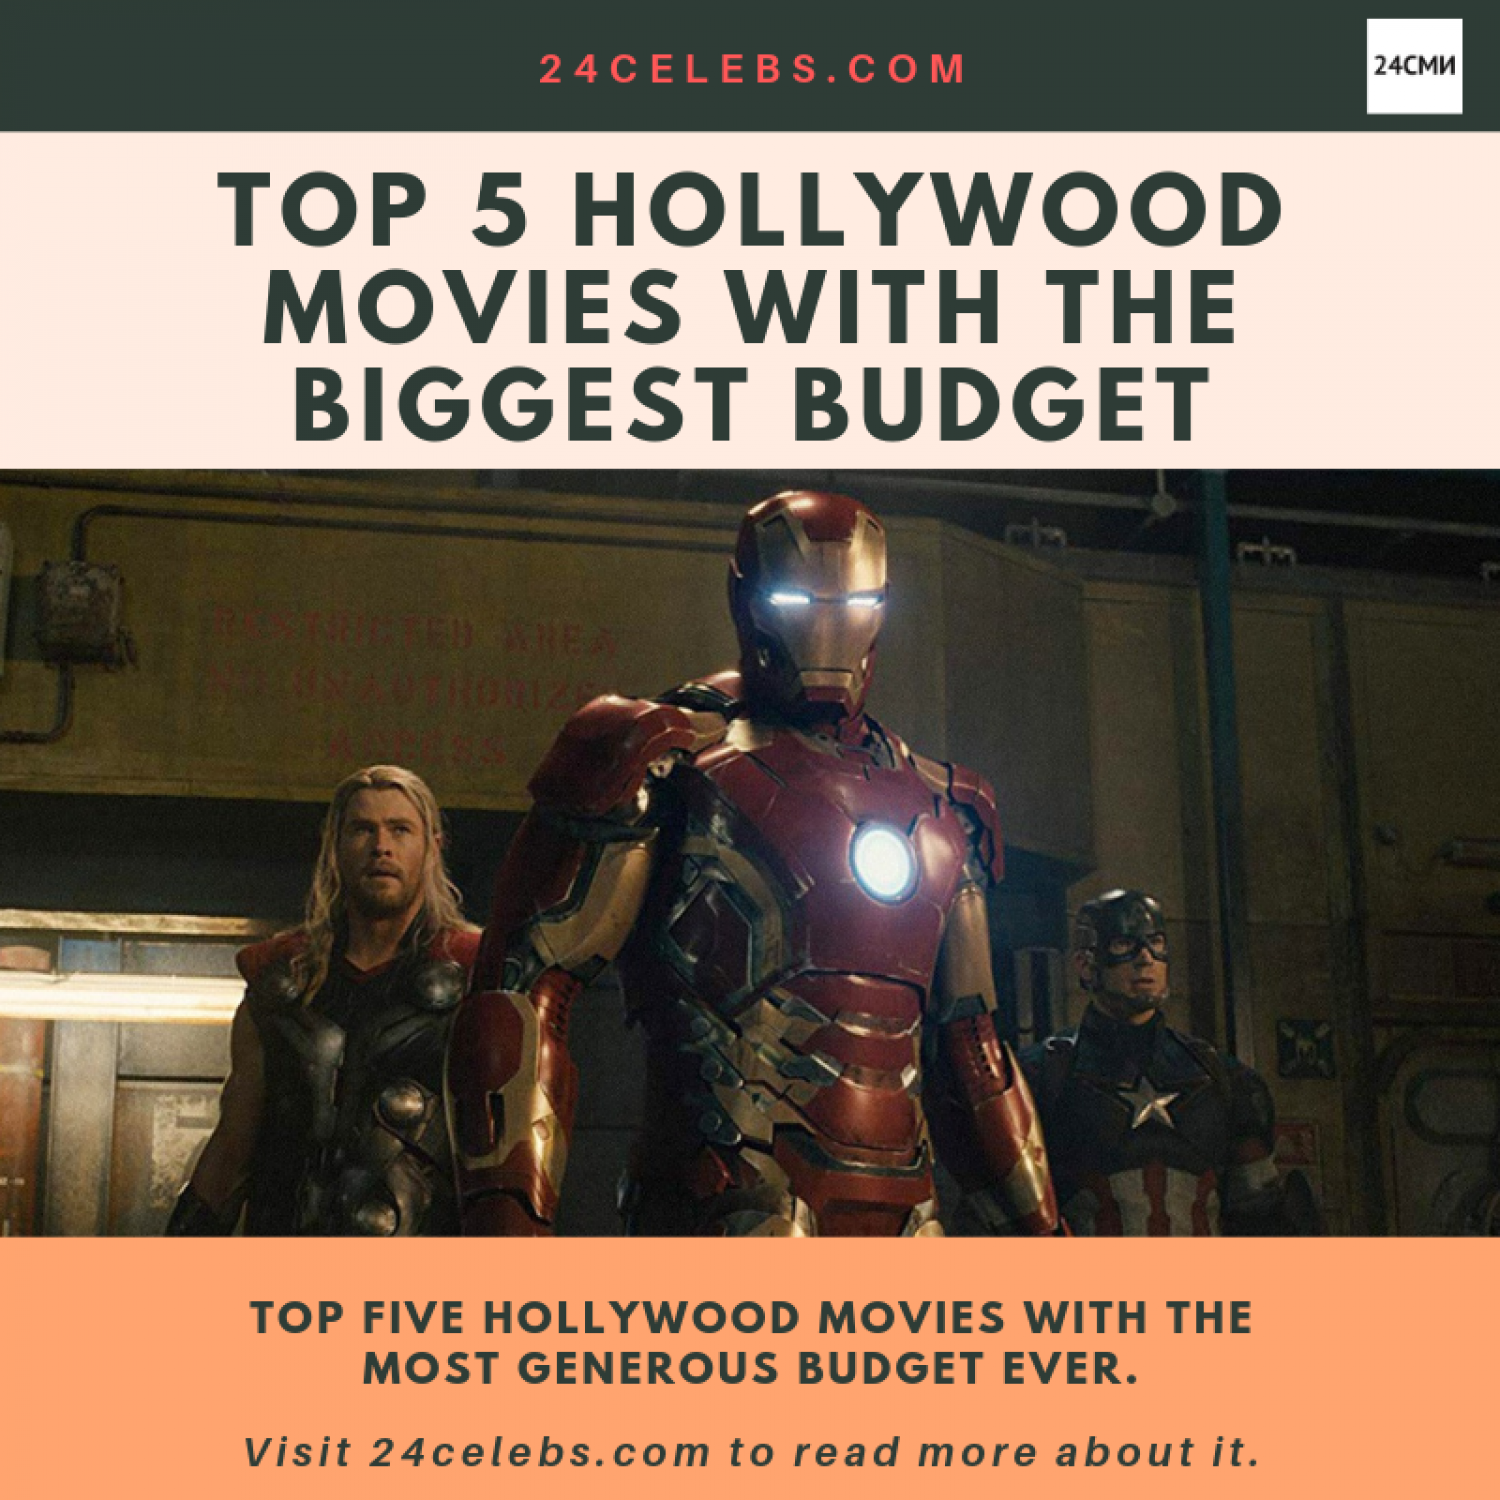 Top 5 Hollywood Movies With The Biggest Budget Infographic